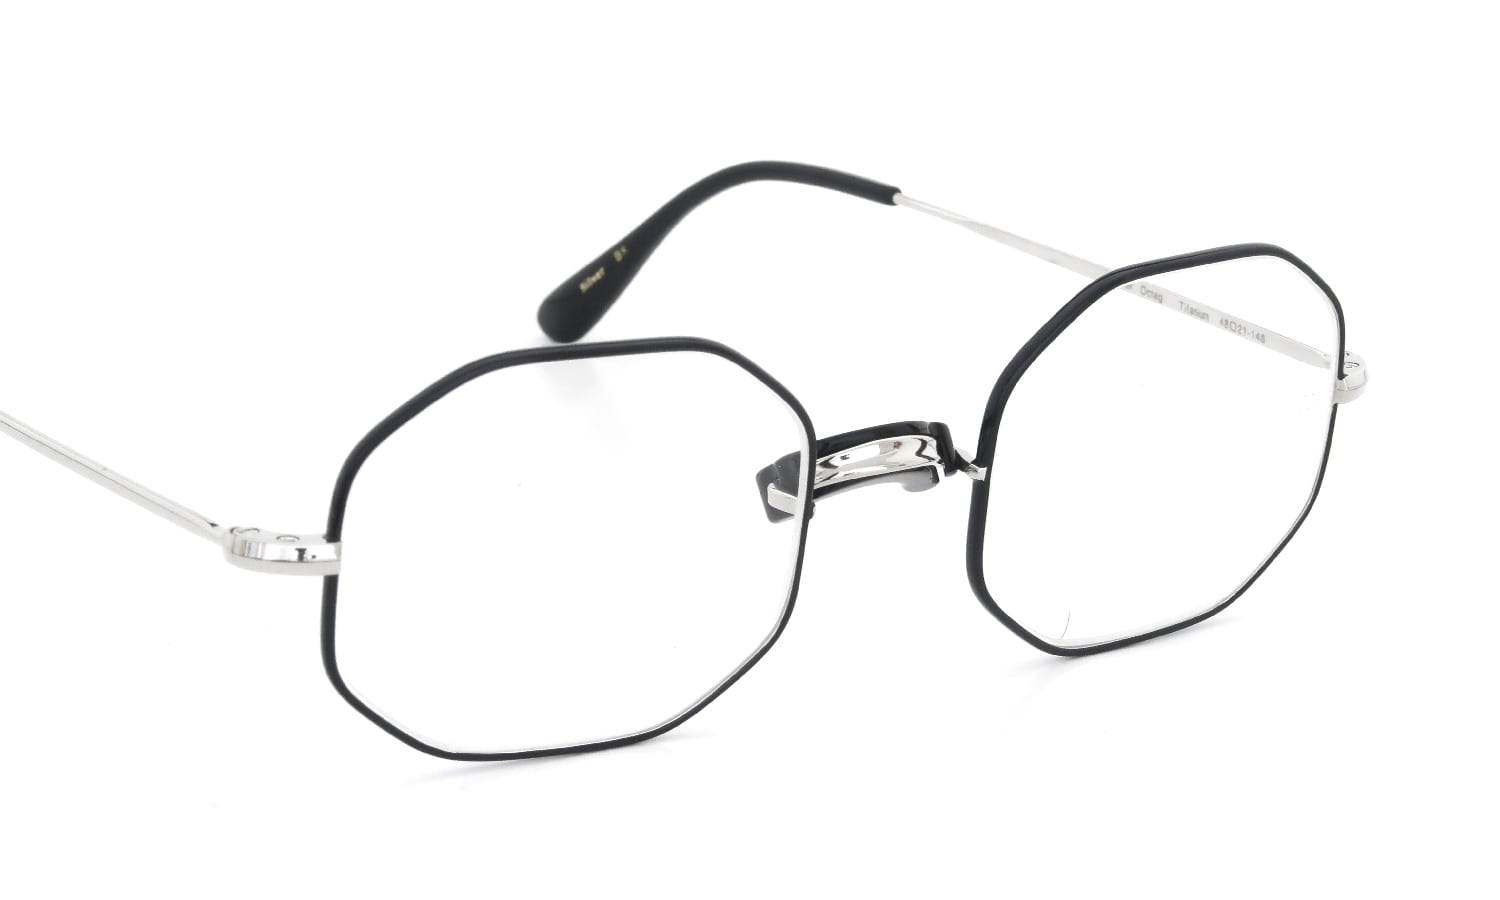 Oliver Goldsmith 海外モデル Oliver Octag with Pad Silver BK 48size